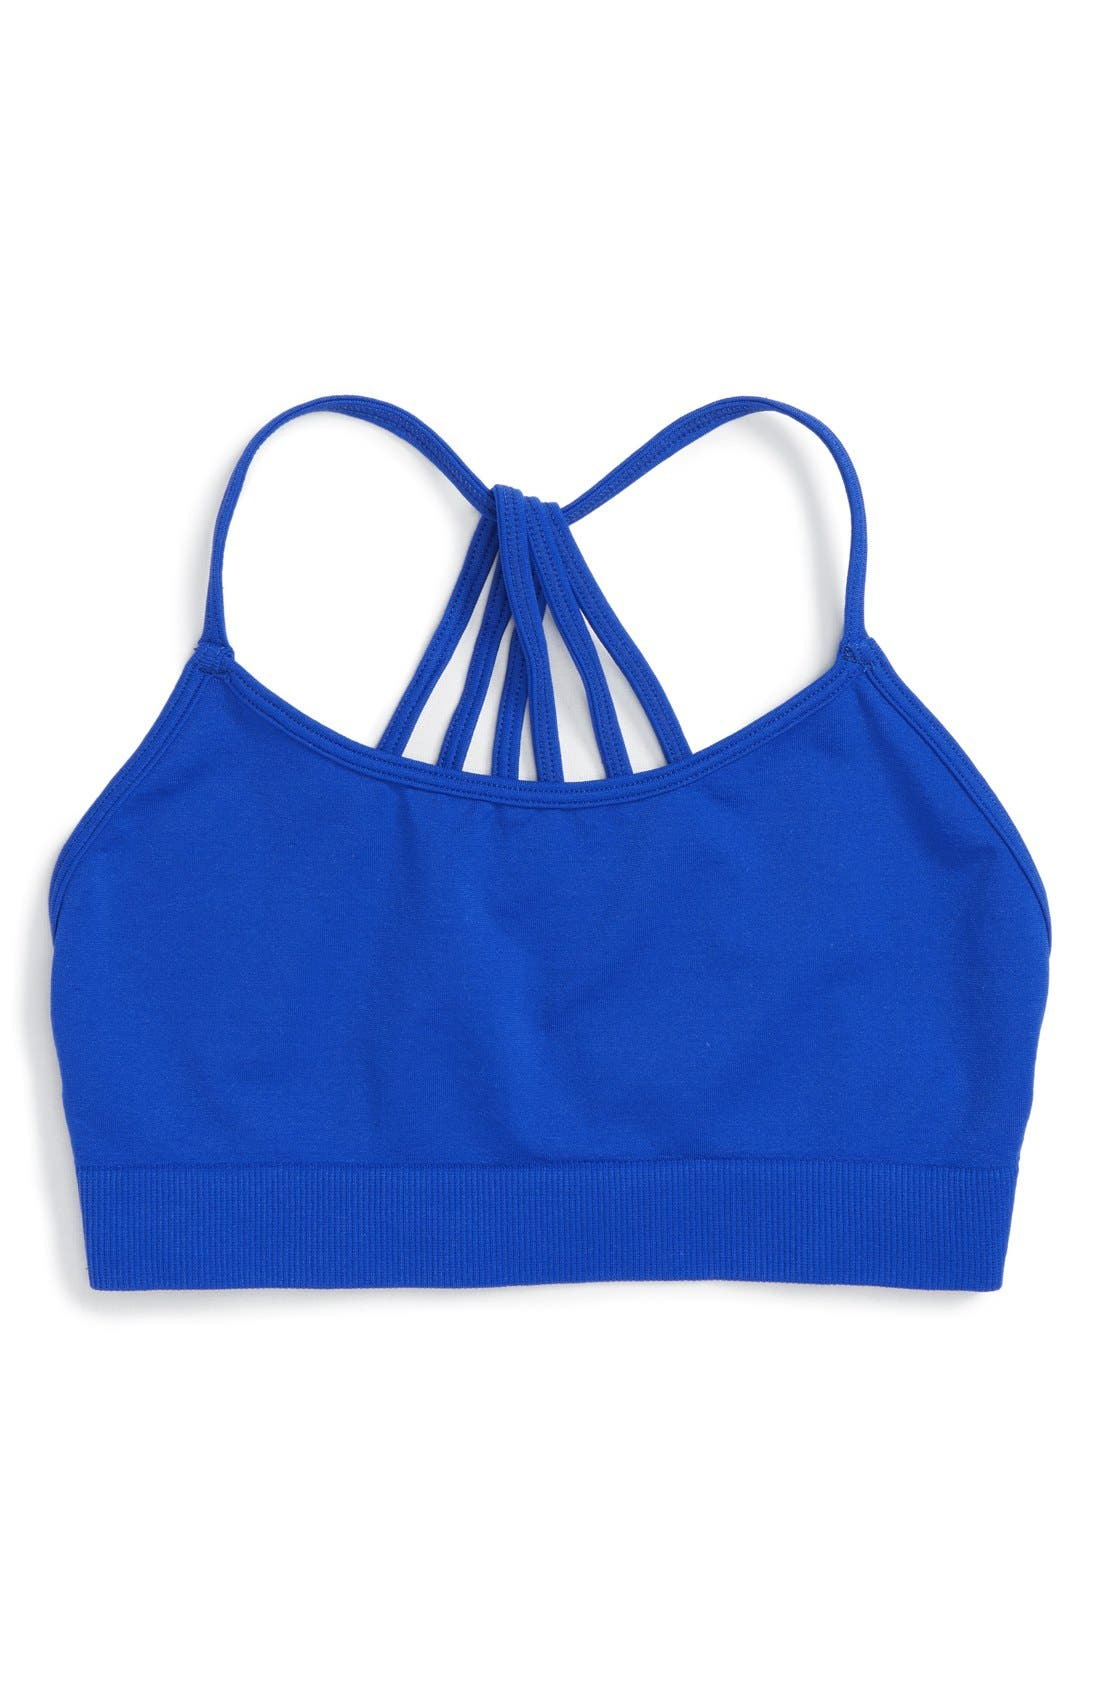 Main Image - Suzette Collection Spaghetti Back Bralette (Big Girls)